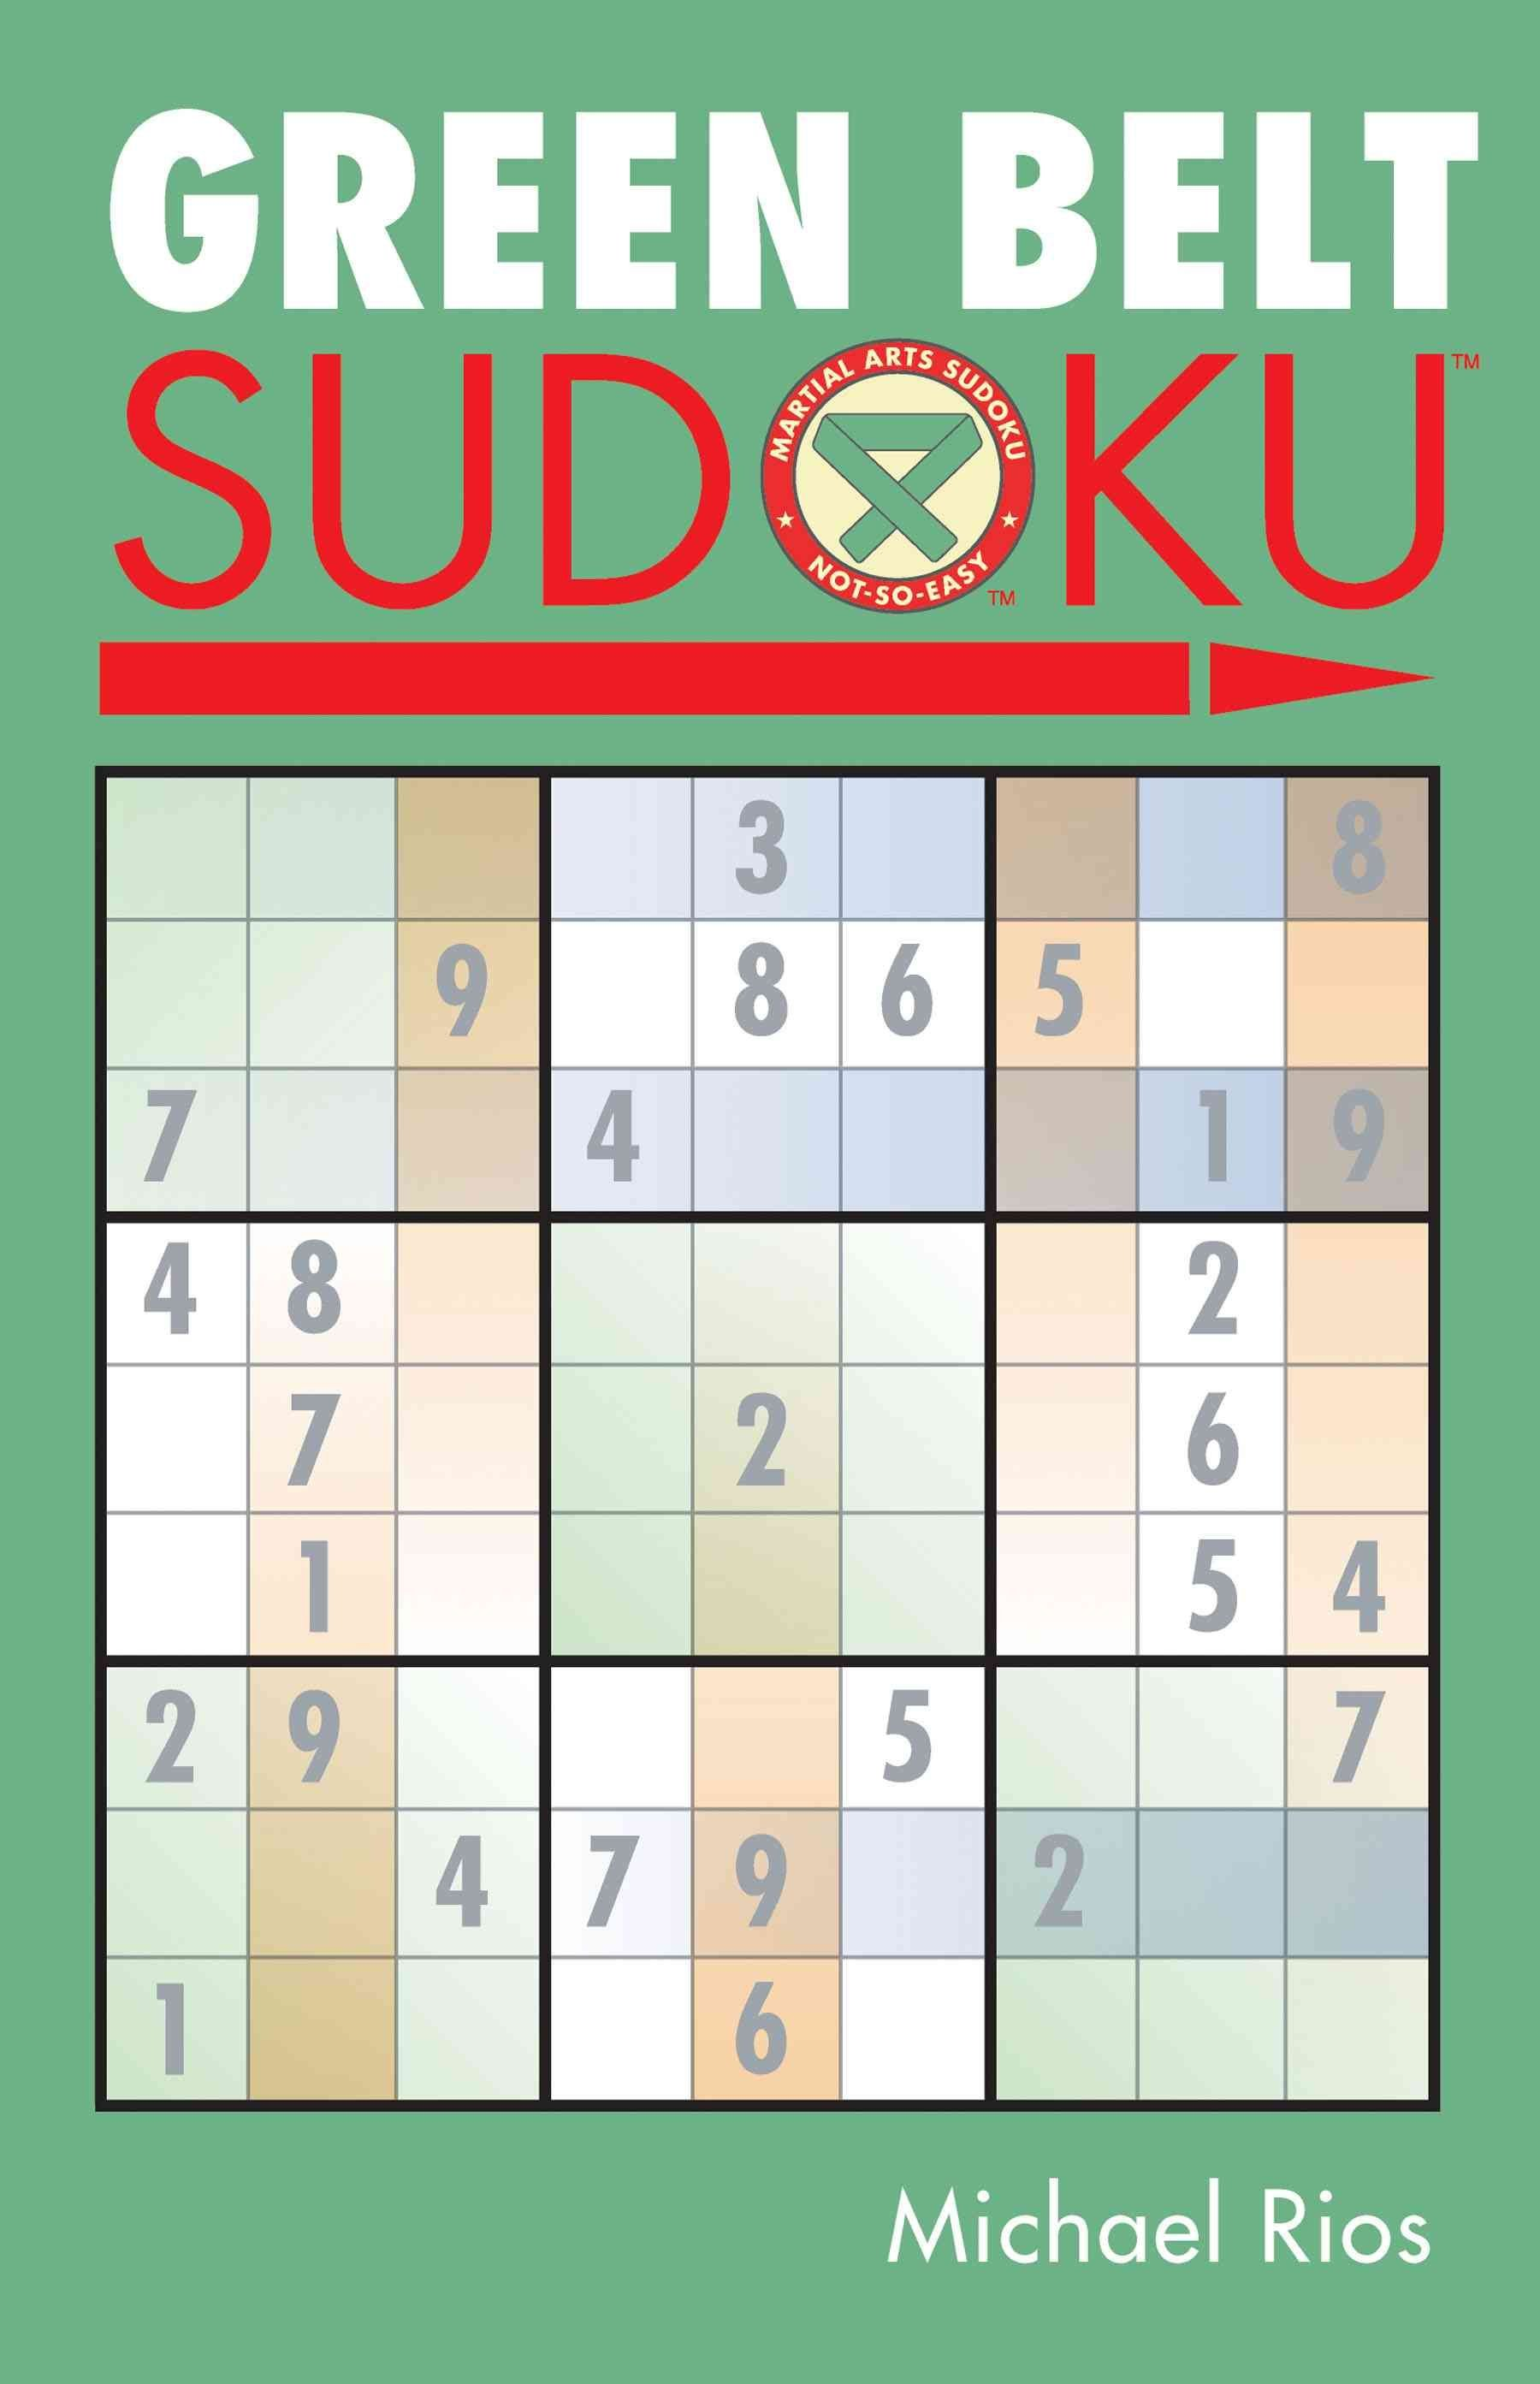 Green Belt Sudoku - Michael Rios